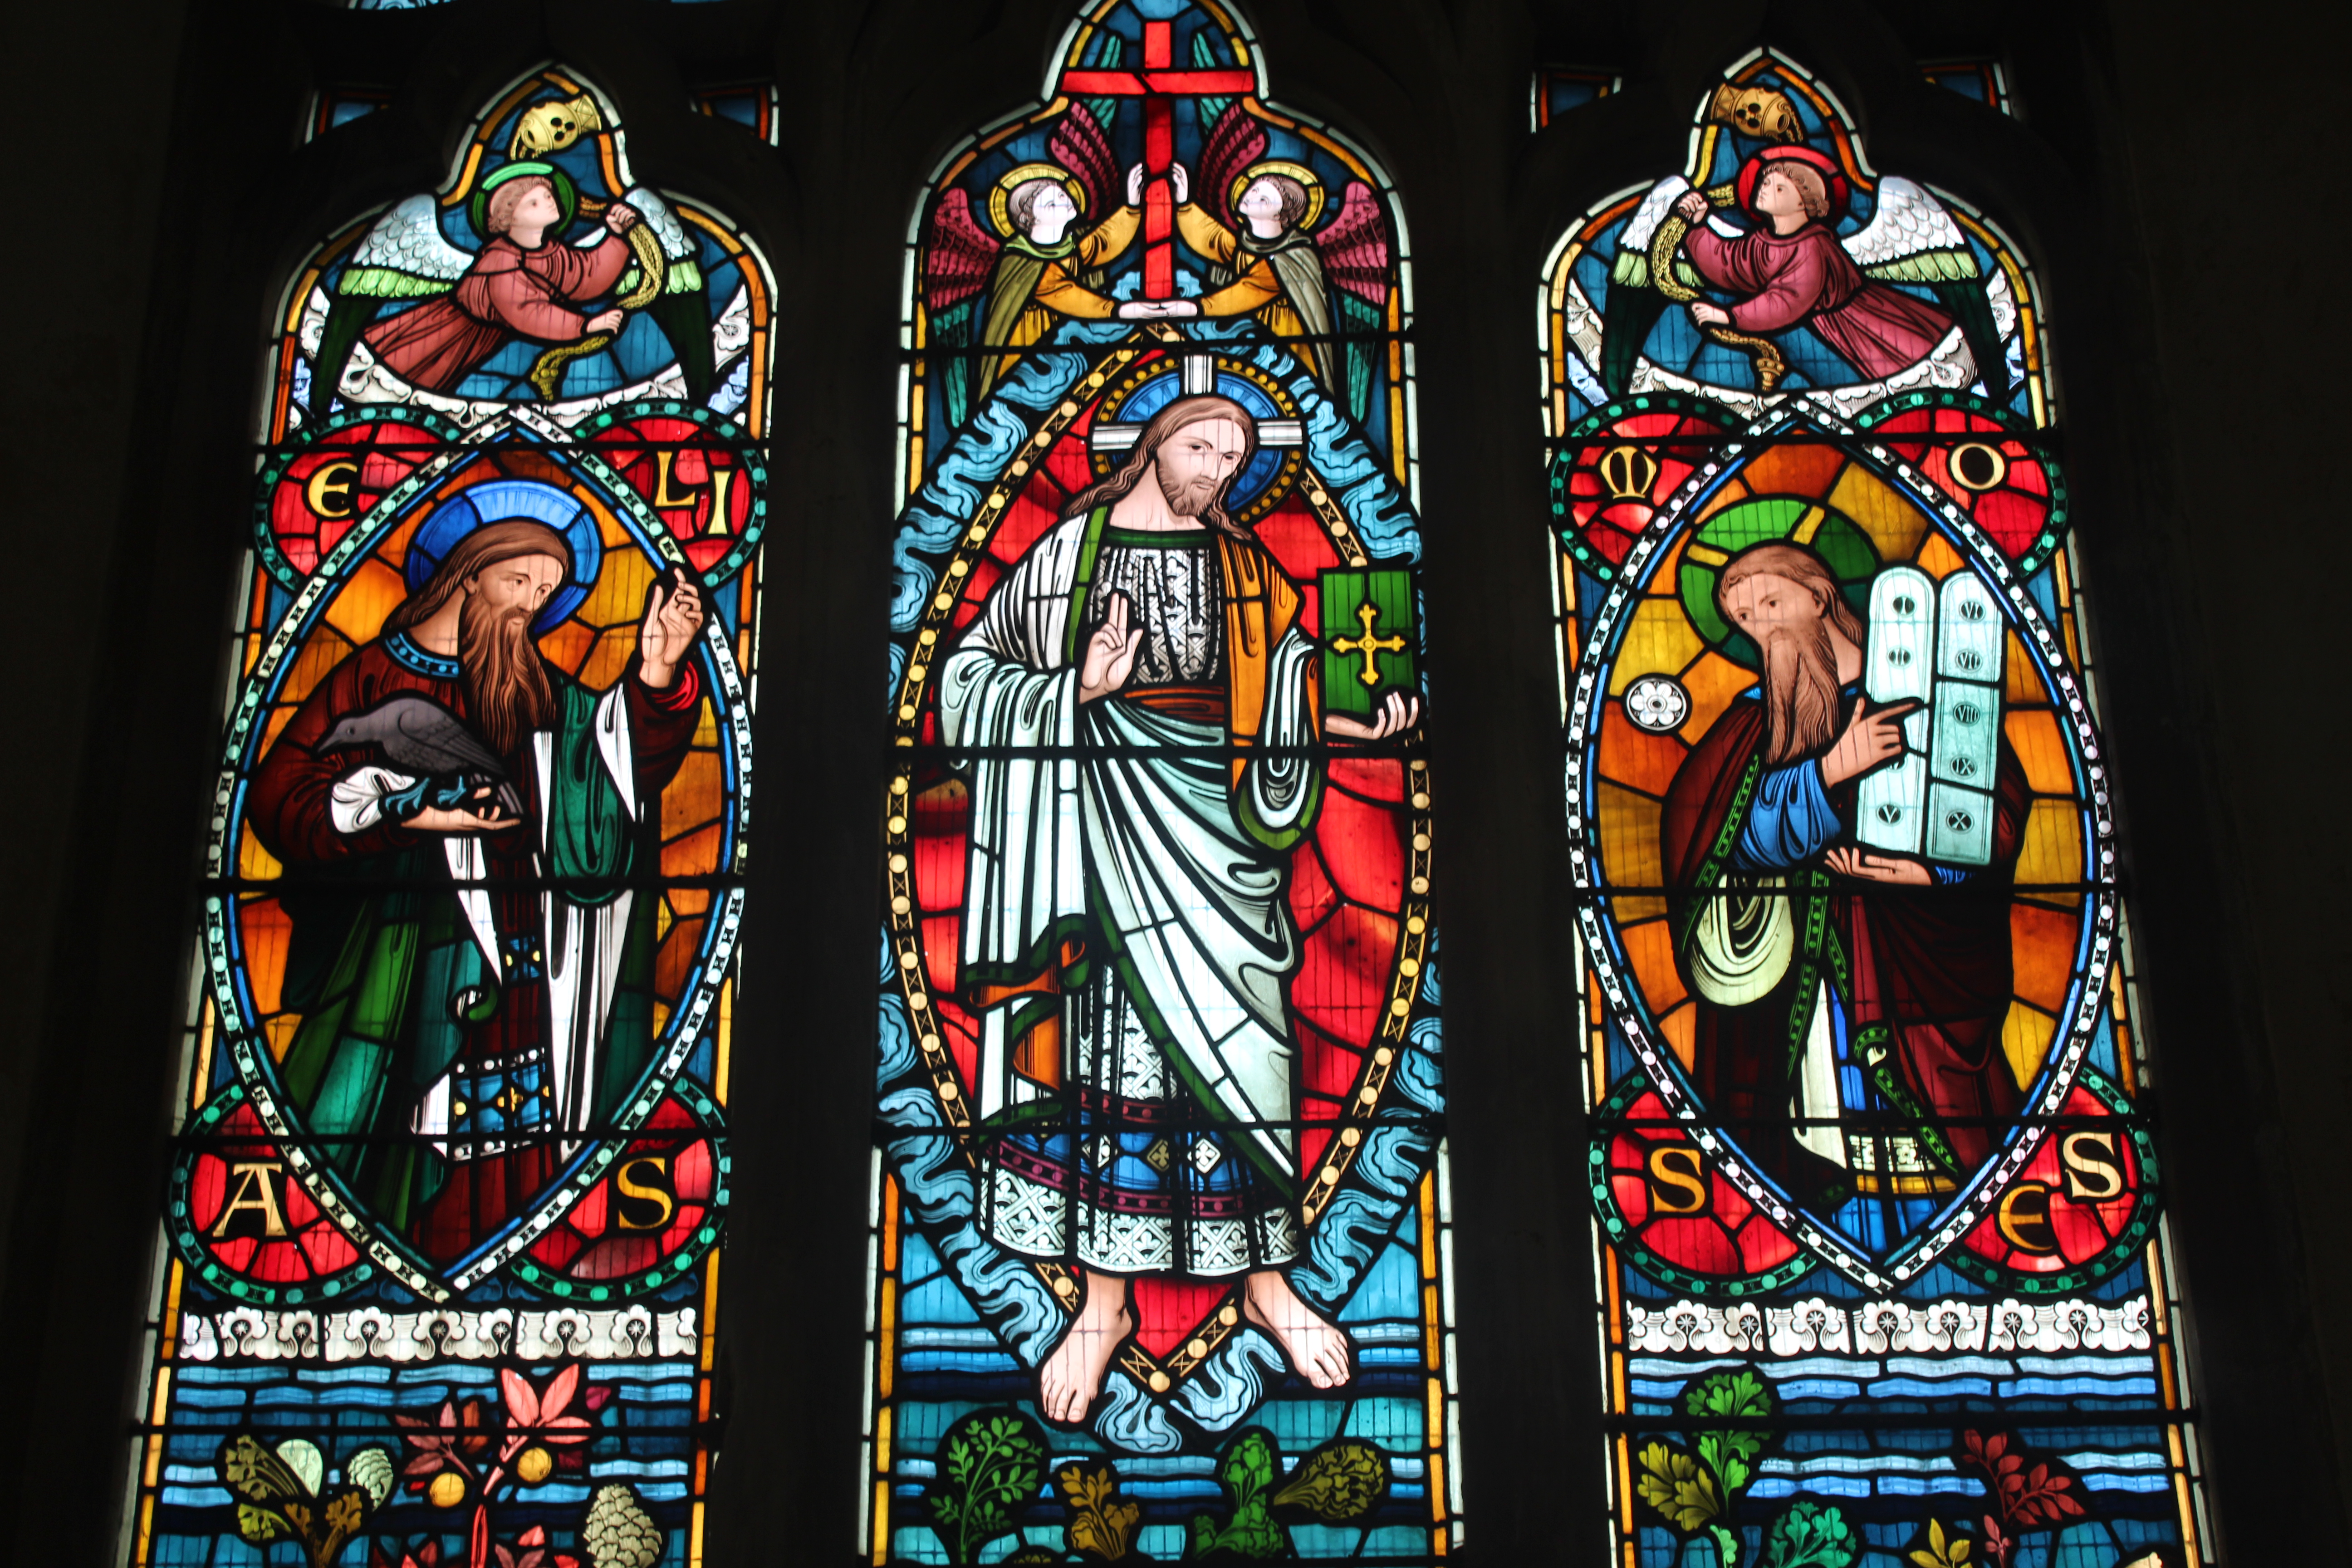 The distinctive window depicts the Transfiguration